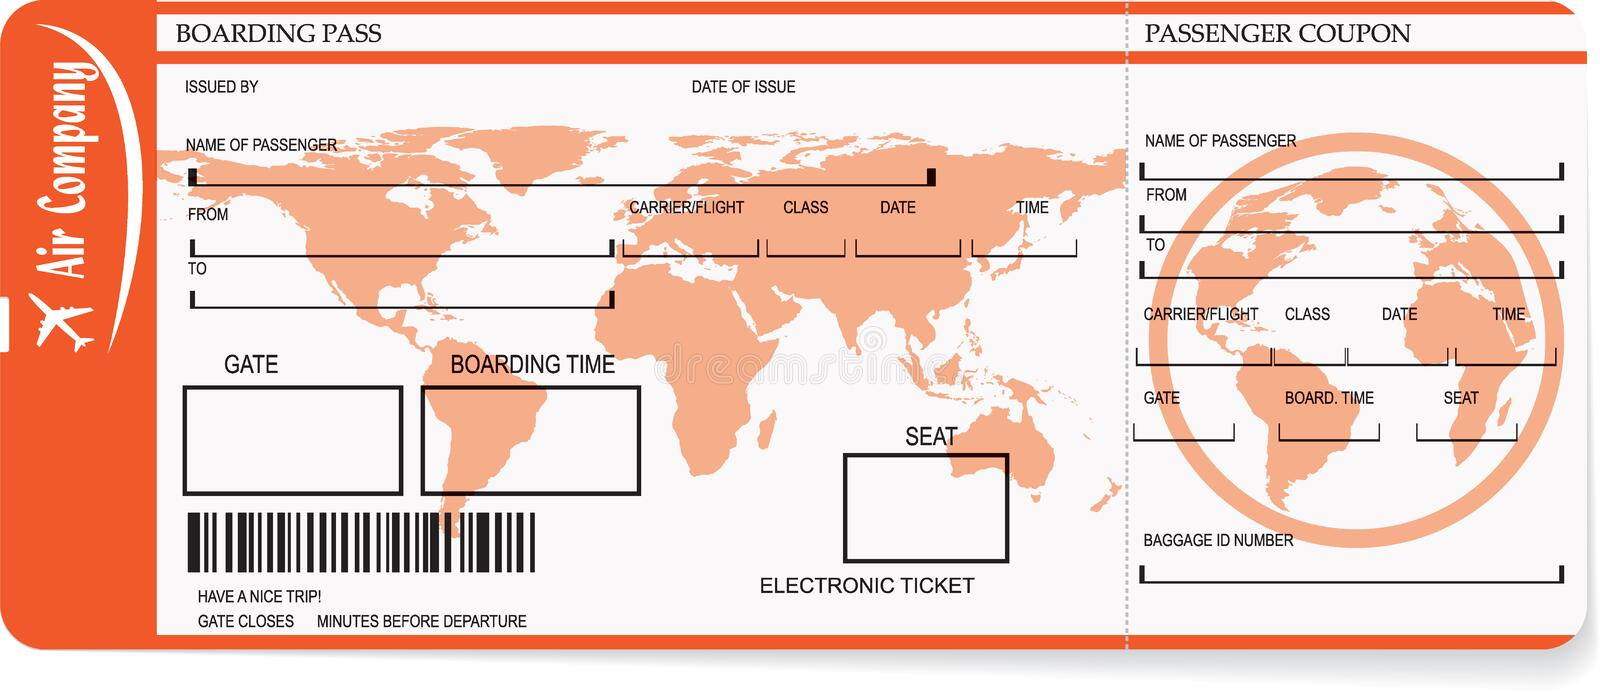 Airline boarding pass tickets with barcode stock illustration